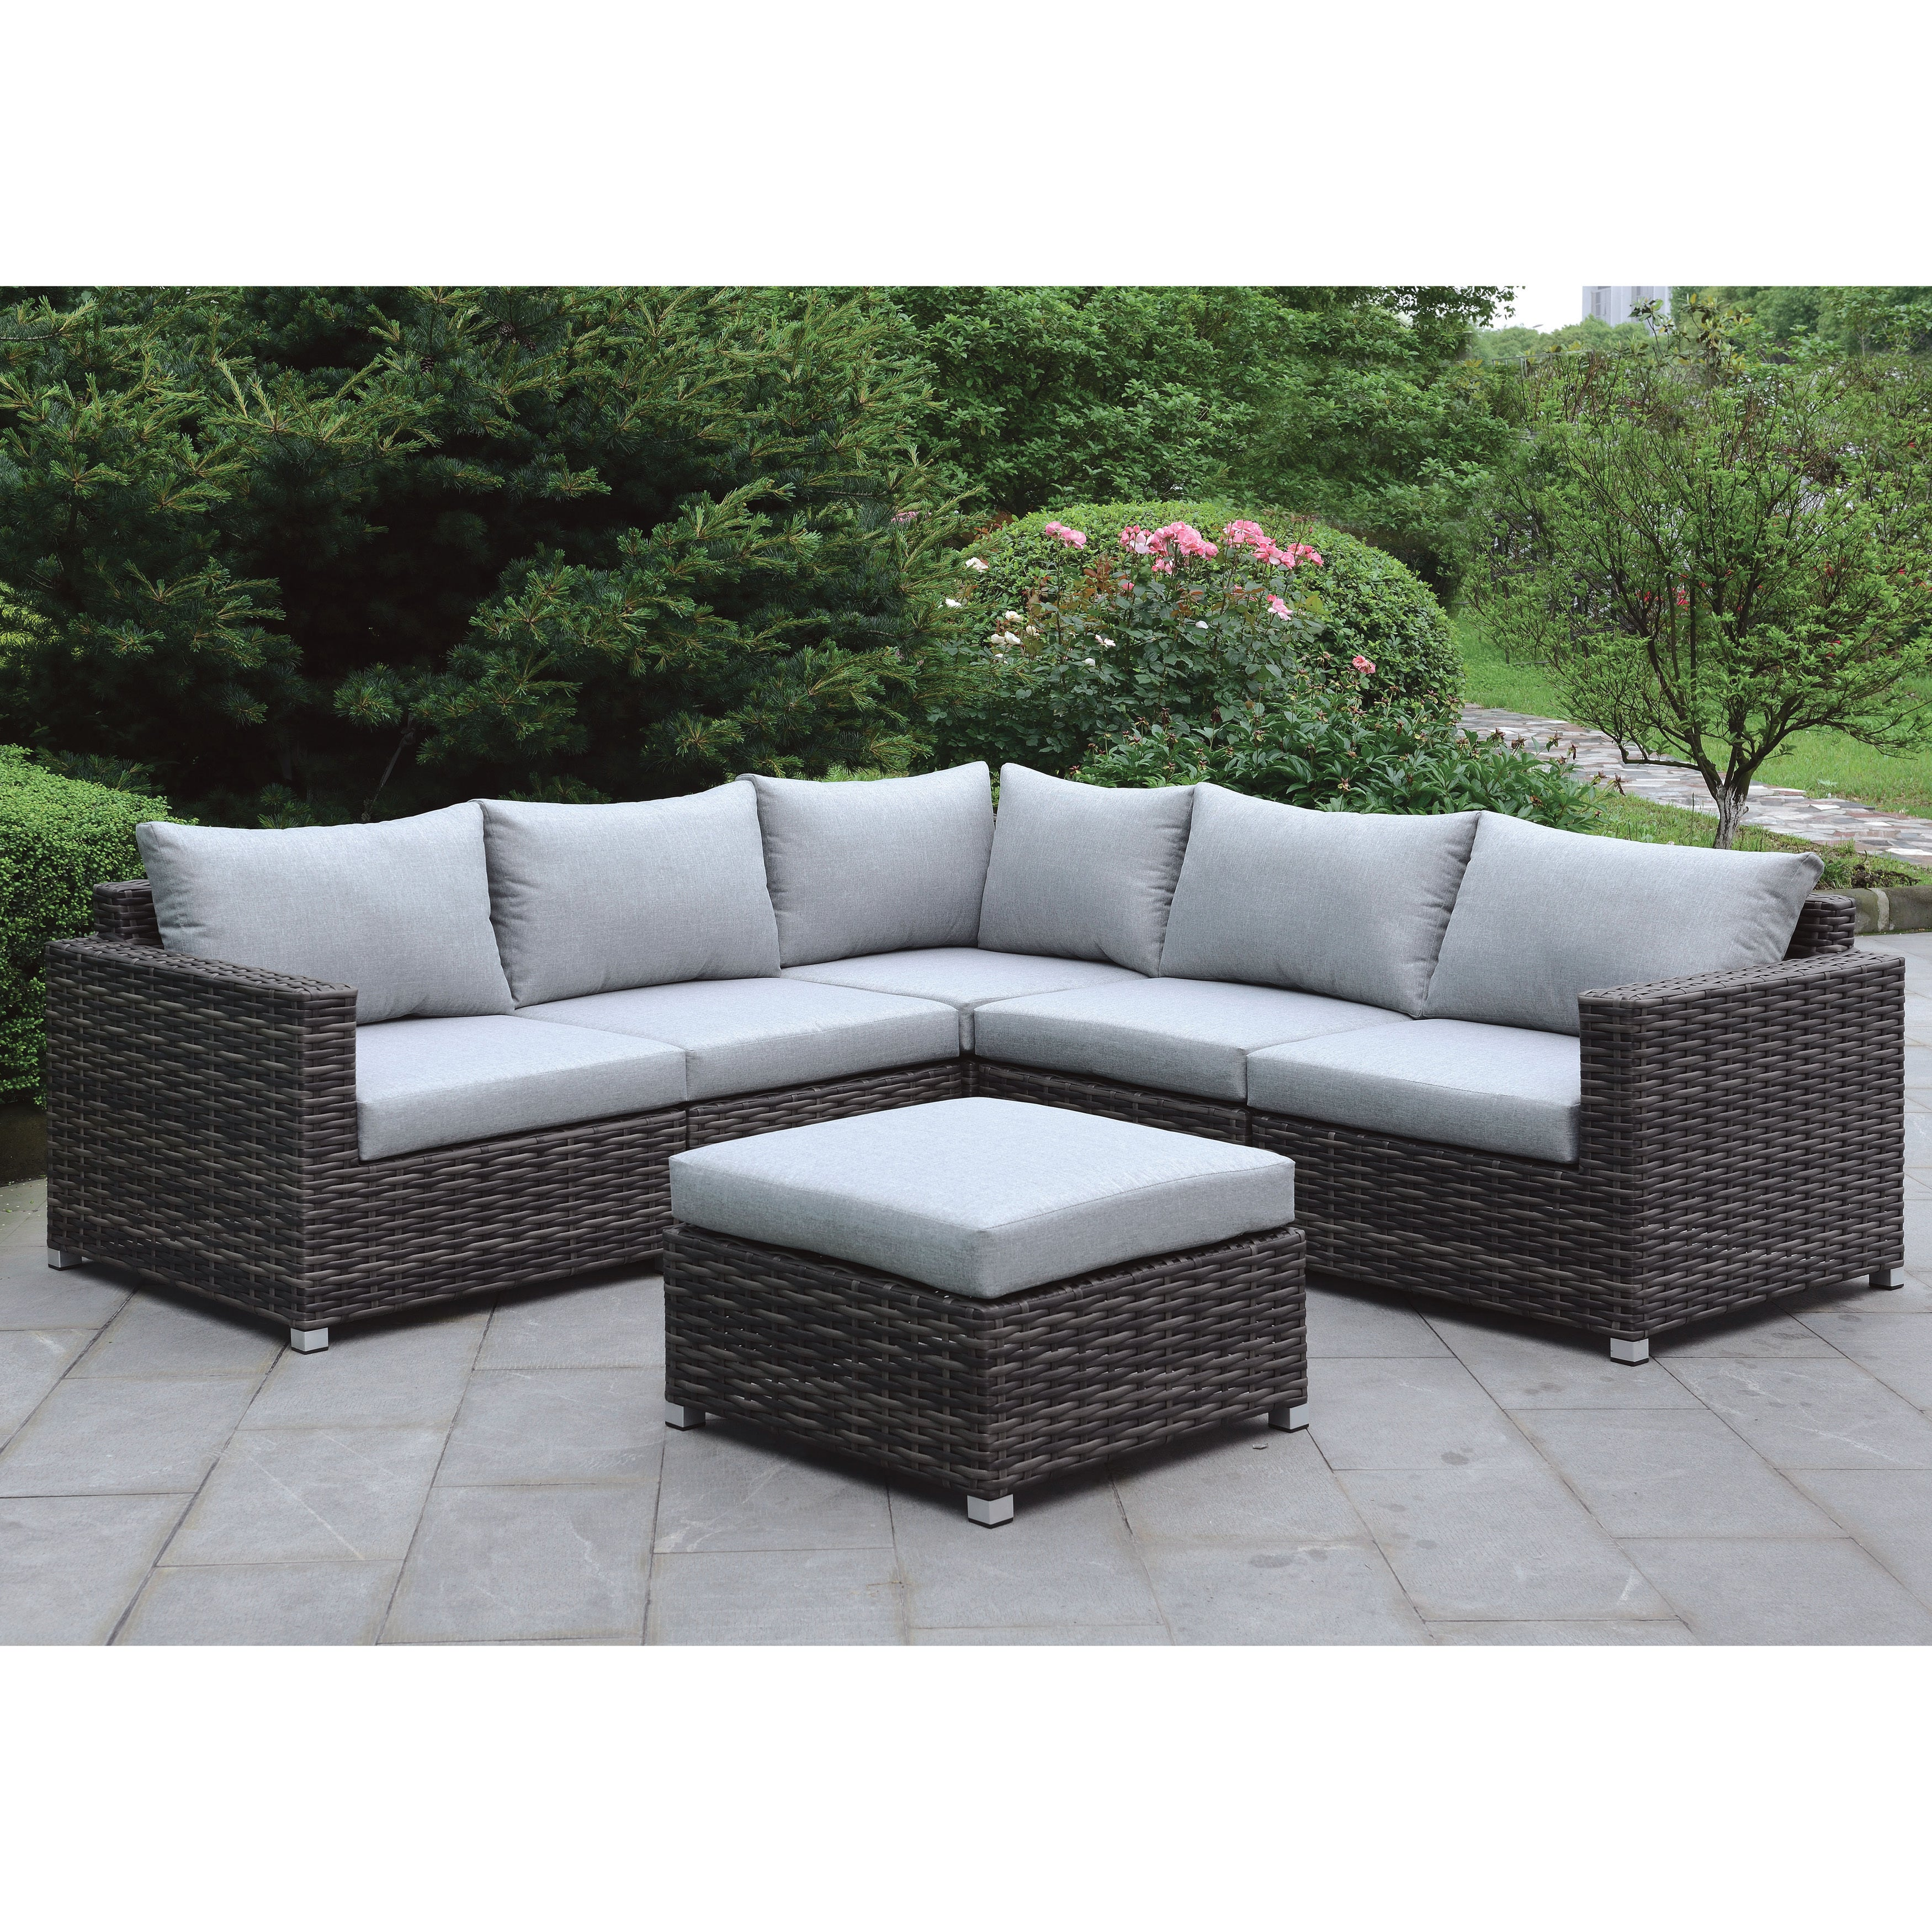 Brea Contemporary Grey Patio Sectional And Ottoman Set By Foa 2 Piece